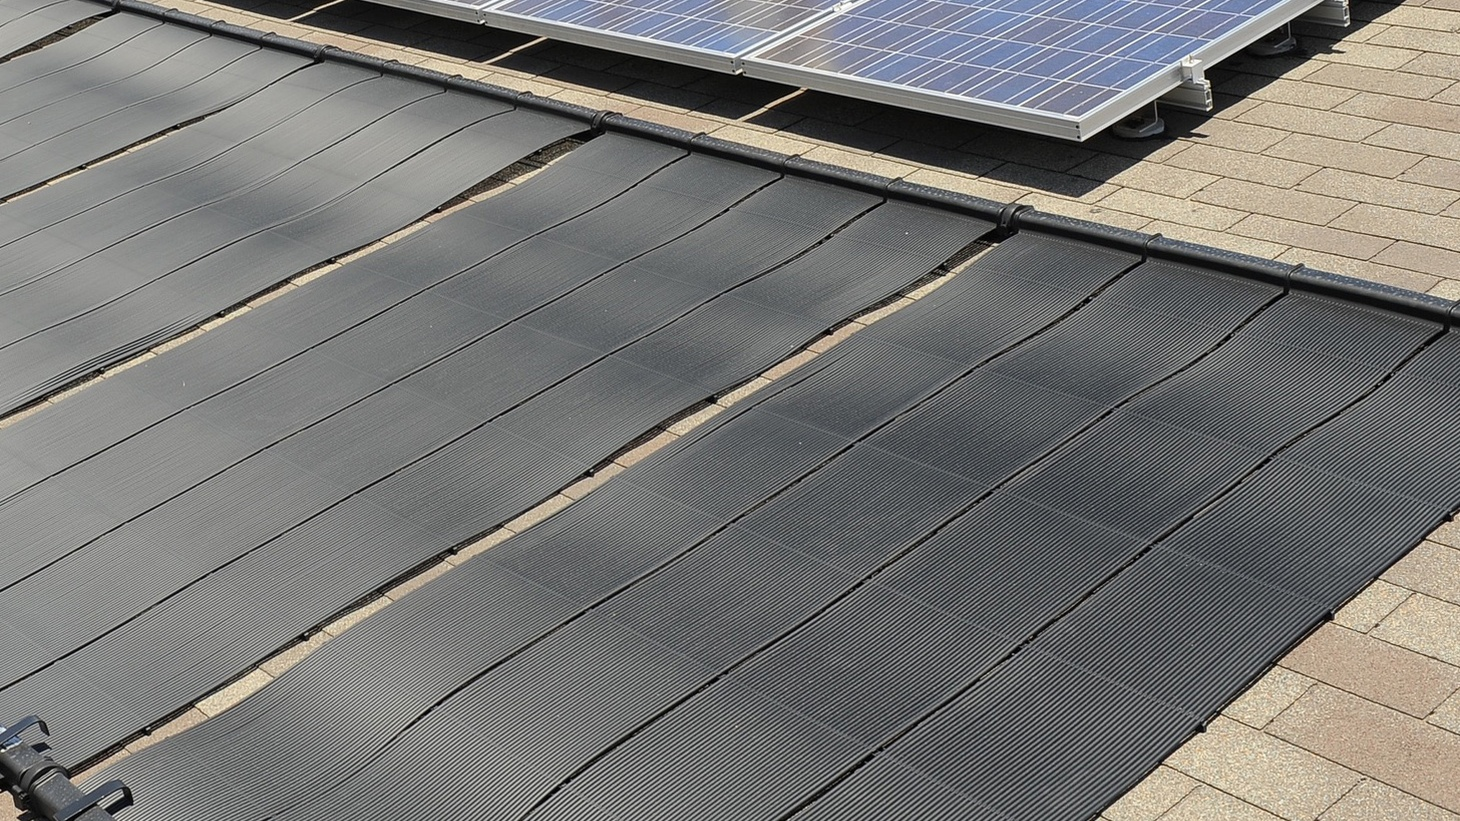 Passive solar pool heating on a roof in Florida. Obviously not such a bad place for making use of the technology. While this is a very cool and useful photo for anyone who wants to check out solar pool heating - FYI the solar PV system above is Miami Dade hurricane compliant by having a third rail under the panels.